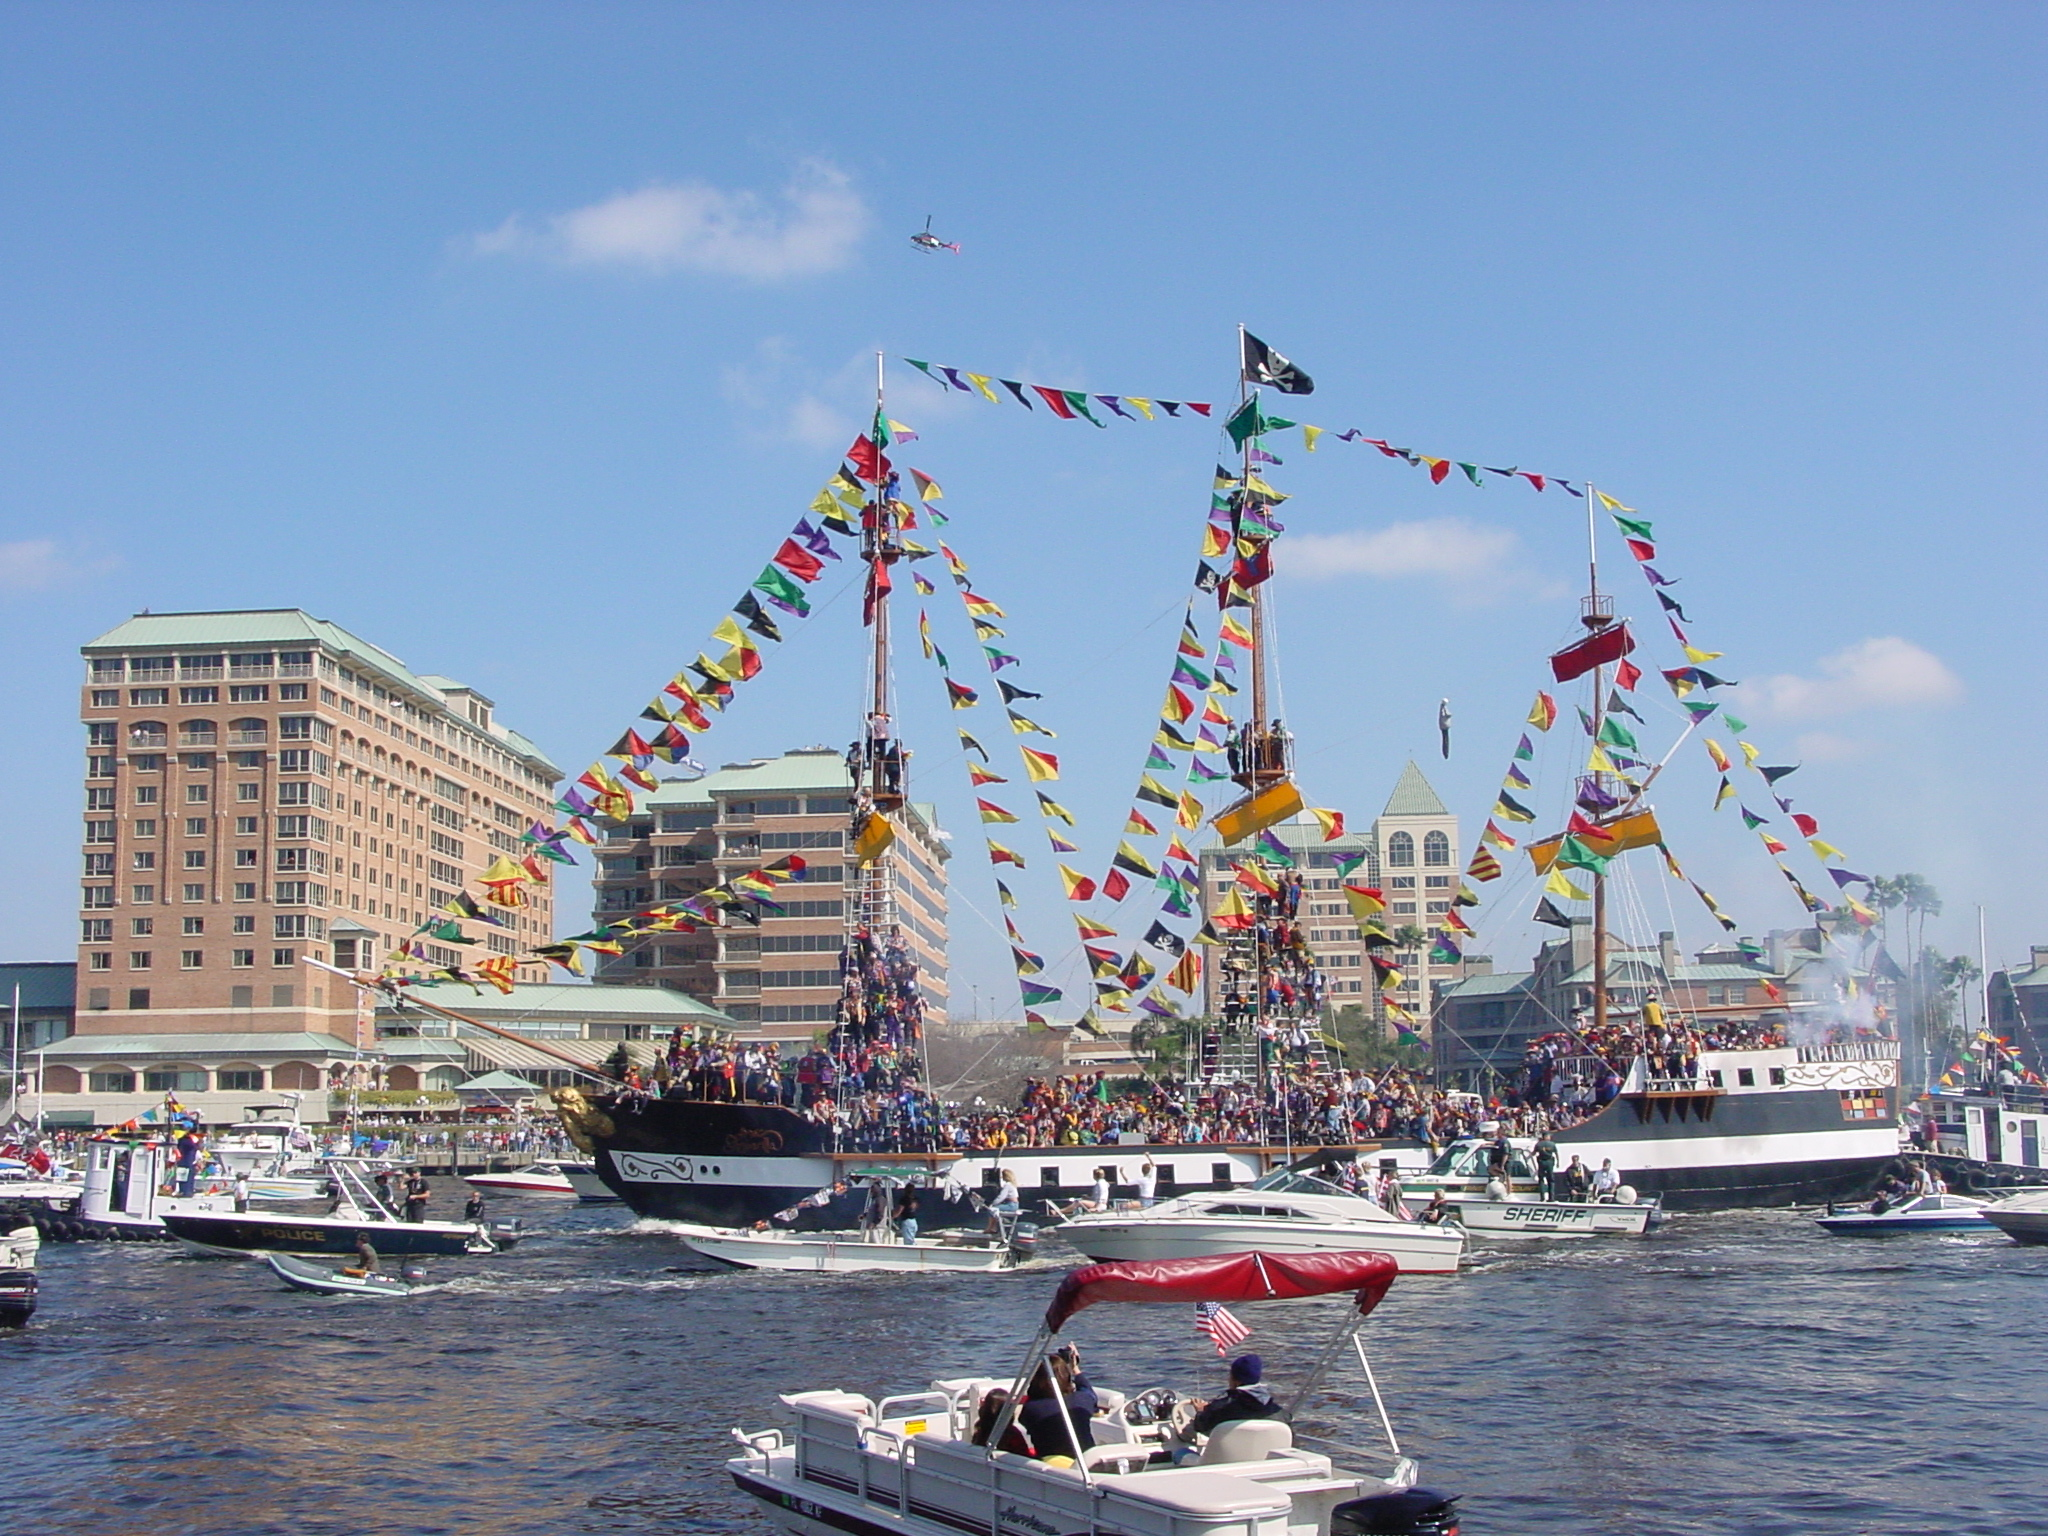 Gasparilla Pirate Festival - Wikipedia